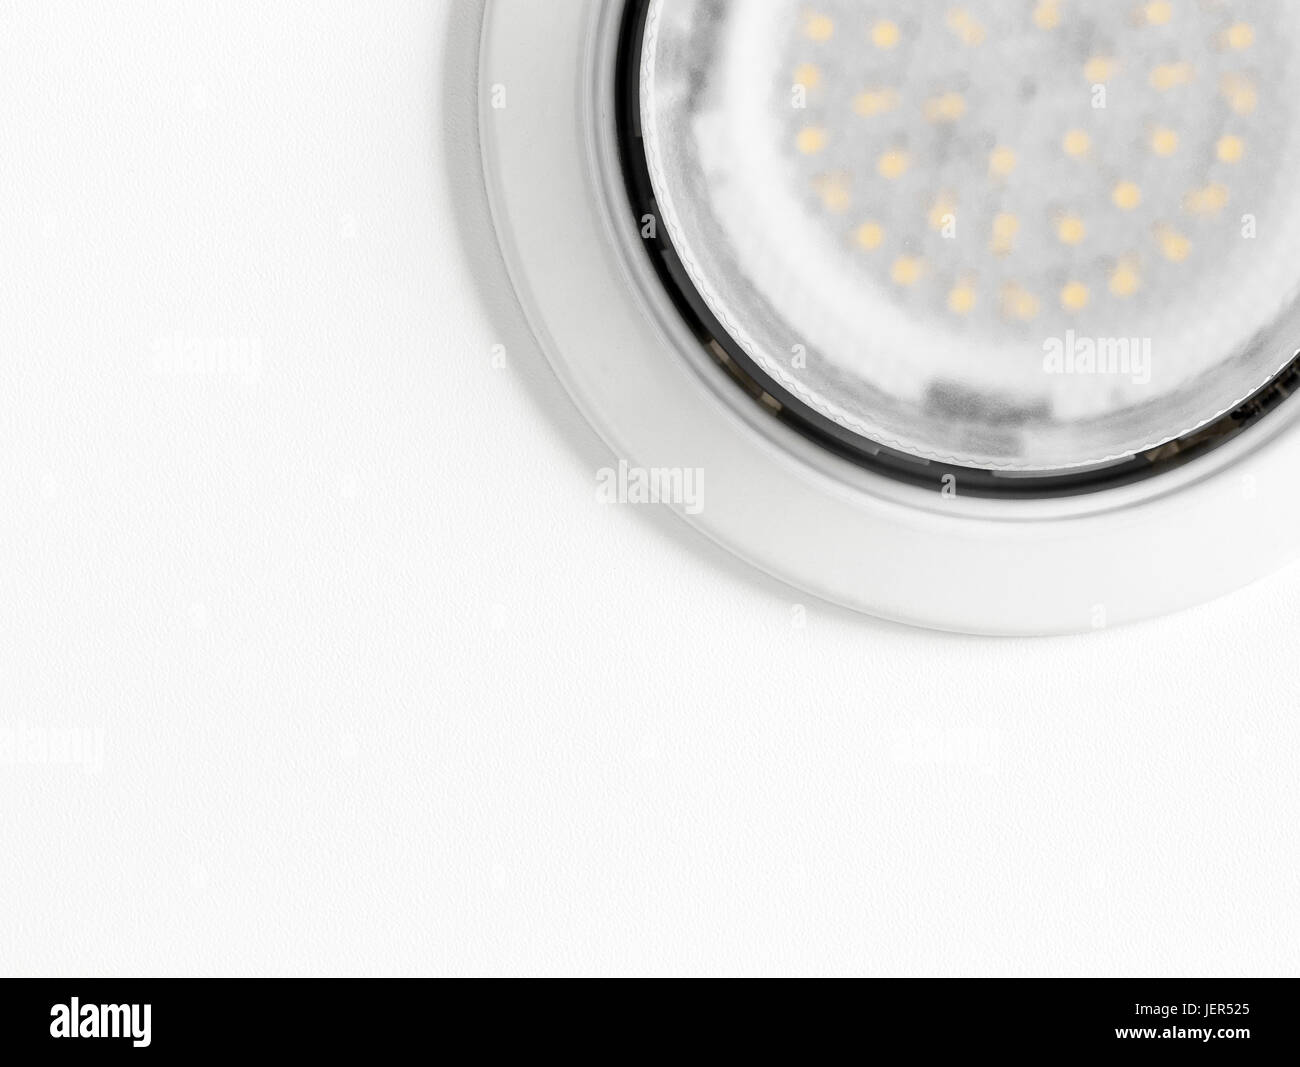 Recessed ceiling LED lamp on white ceiling closeup. - Stock Image